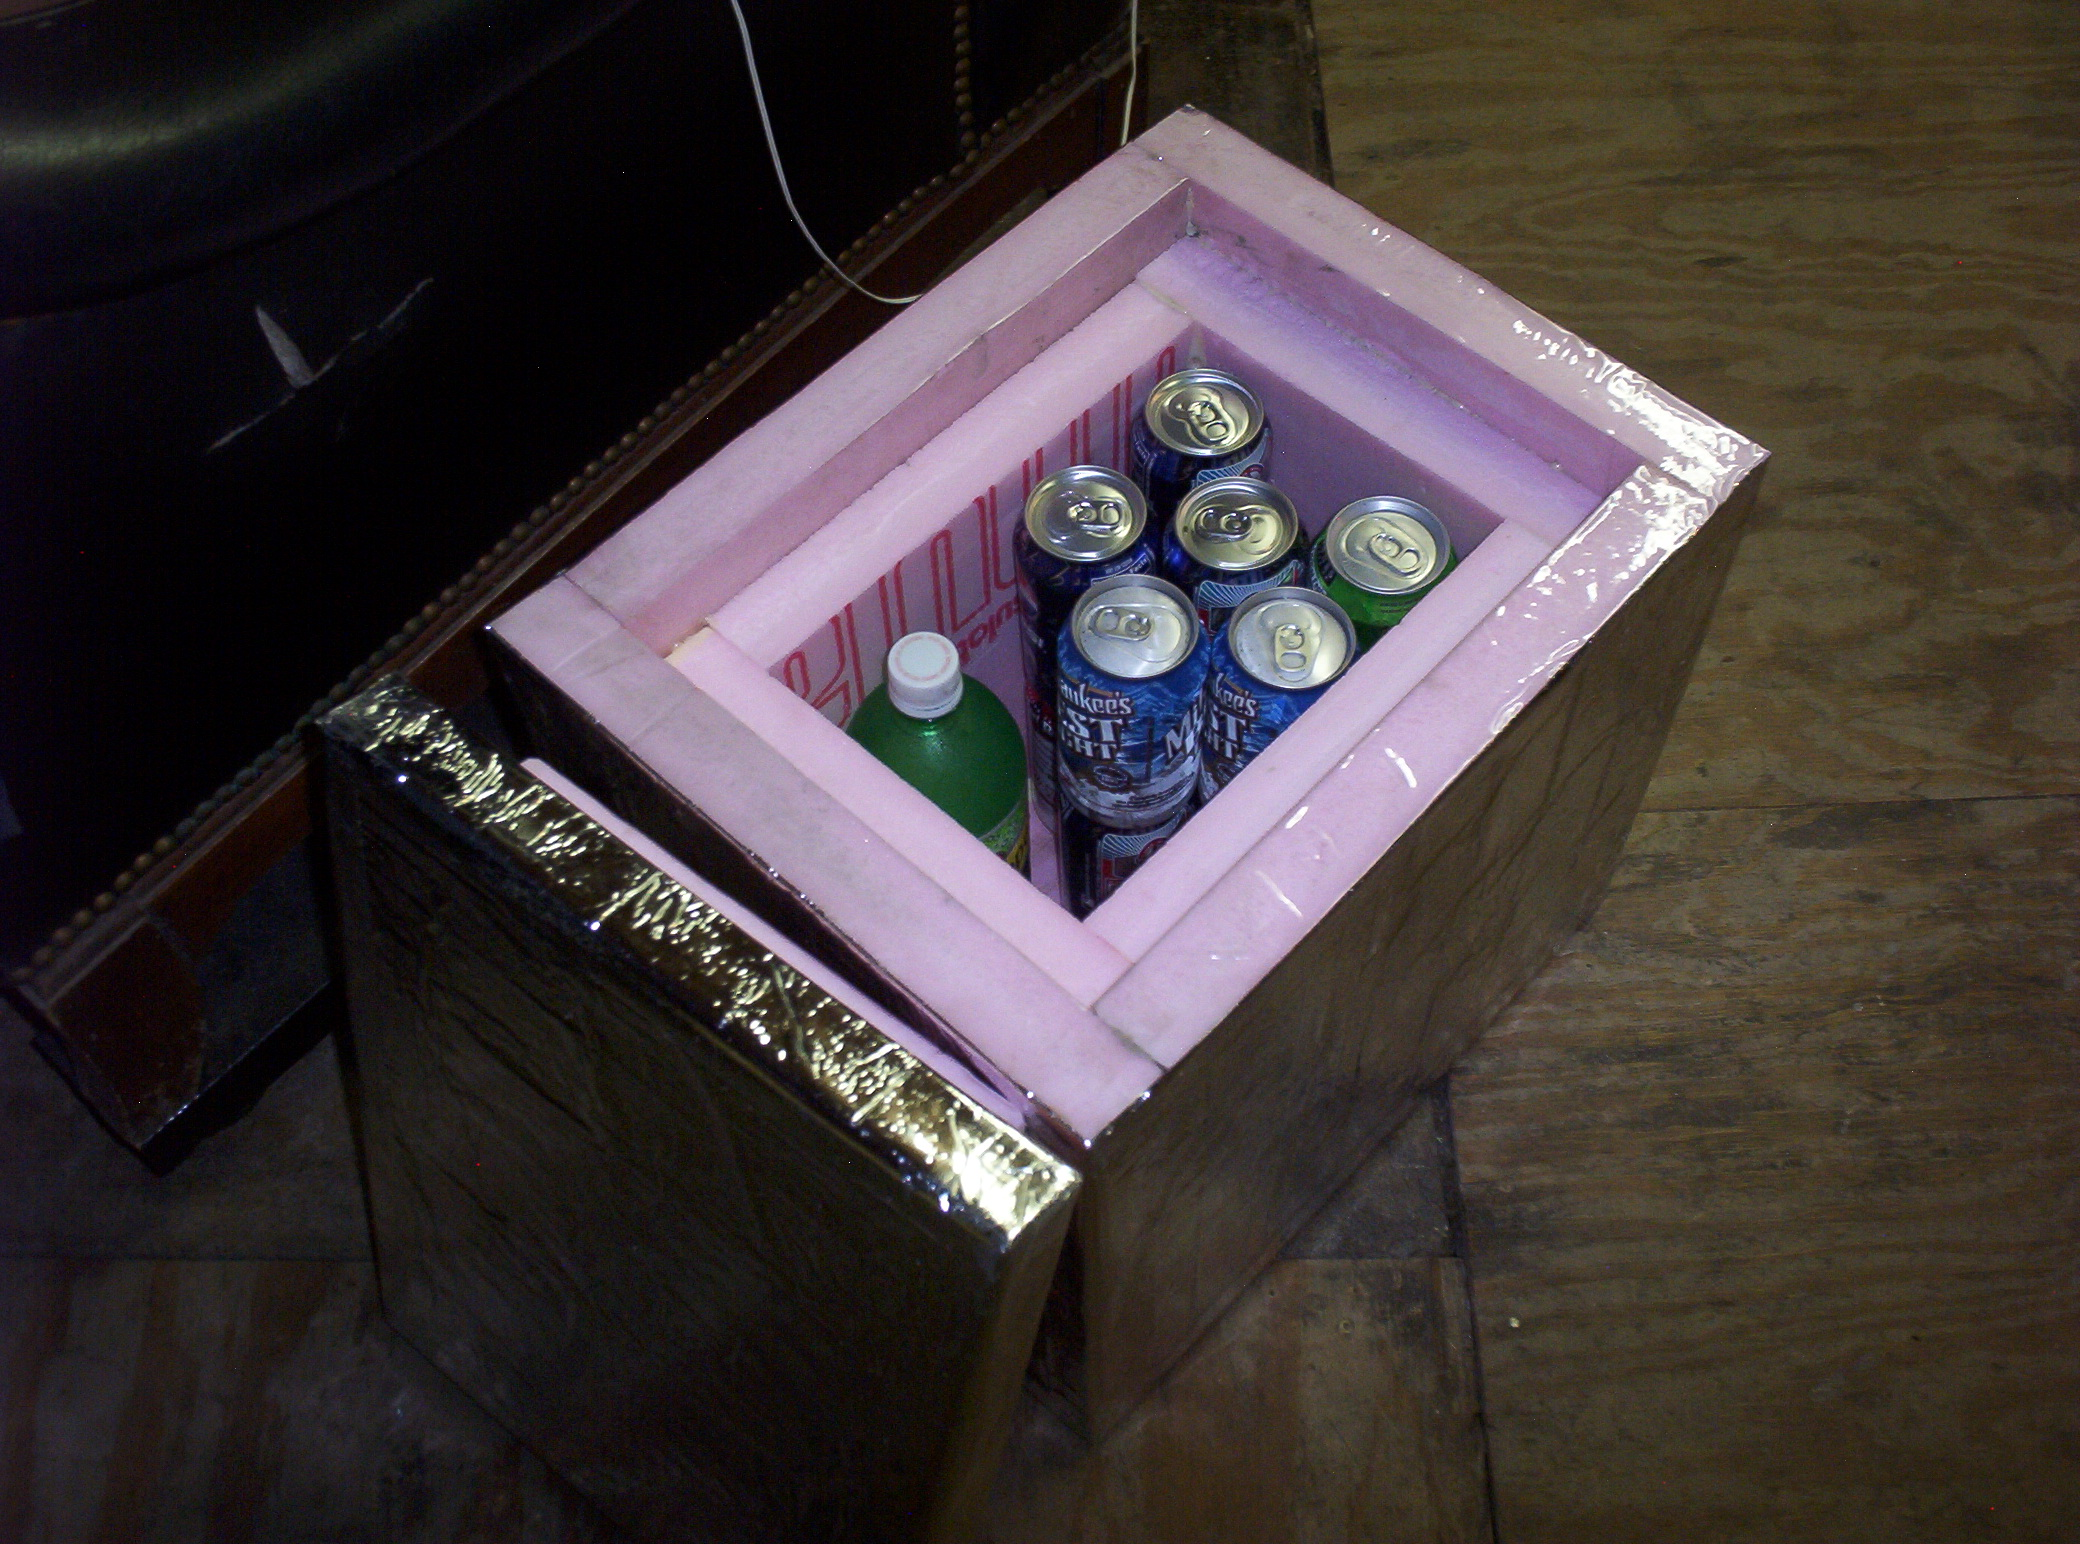 Make a well-insulated travel cooler